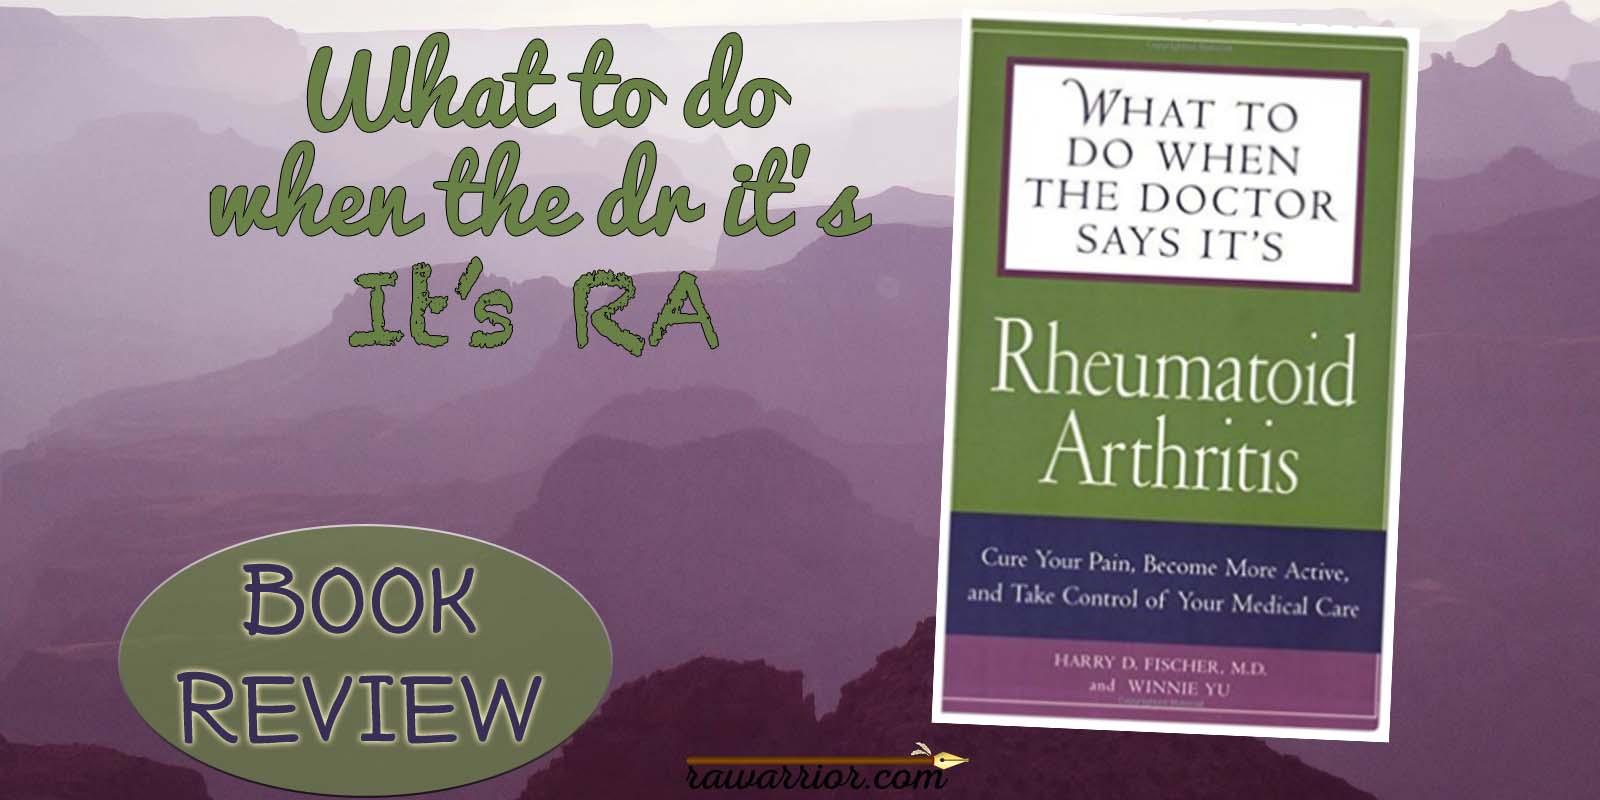 What to Do When the Doctor Says Its Rheumatoid Arthritis